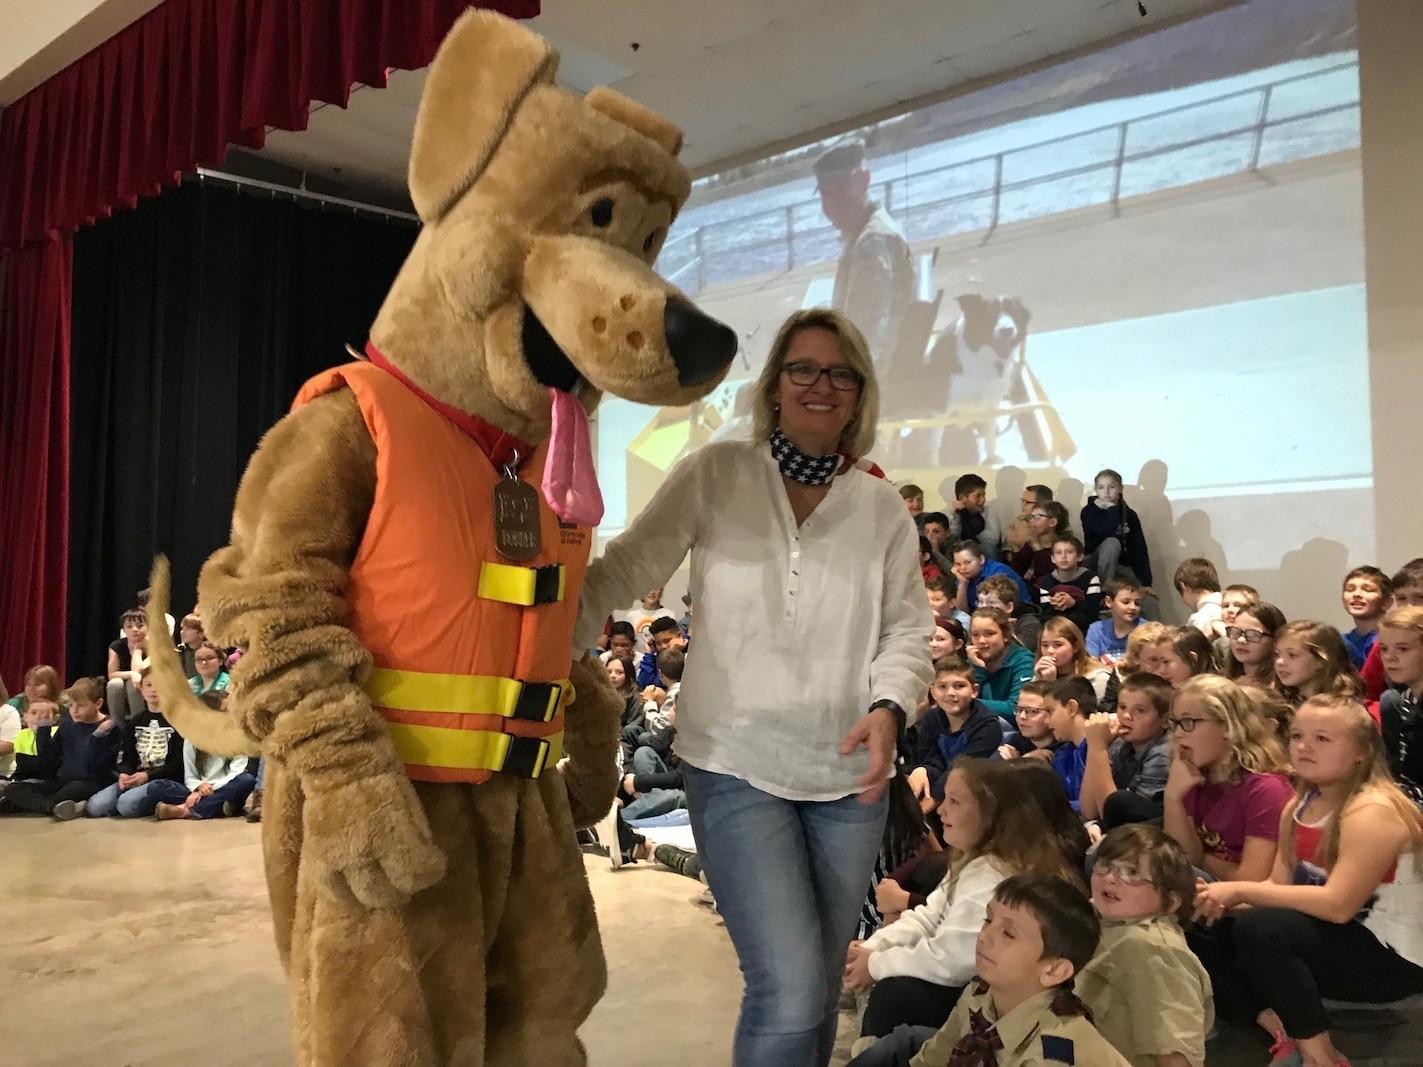 Cleveland, Okla., Intermediate School music and art teacher, Anja Johnson, introduces Bobber, the U.S. Army water safety dog, to school children as part of their annual Veterans Day recognition ceremony. Bobber helped pay tribute to veterans in the audience and also provided each child in attendance a grab-bag of water safety supplies and informational brochures.